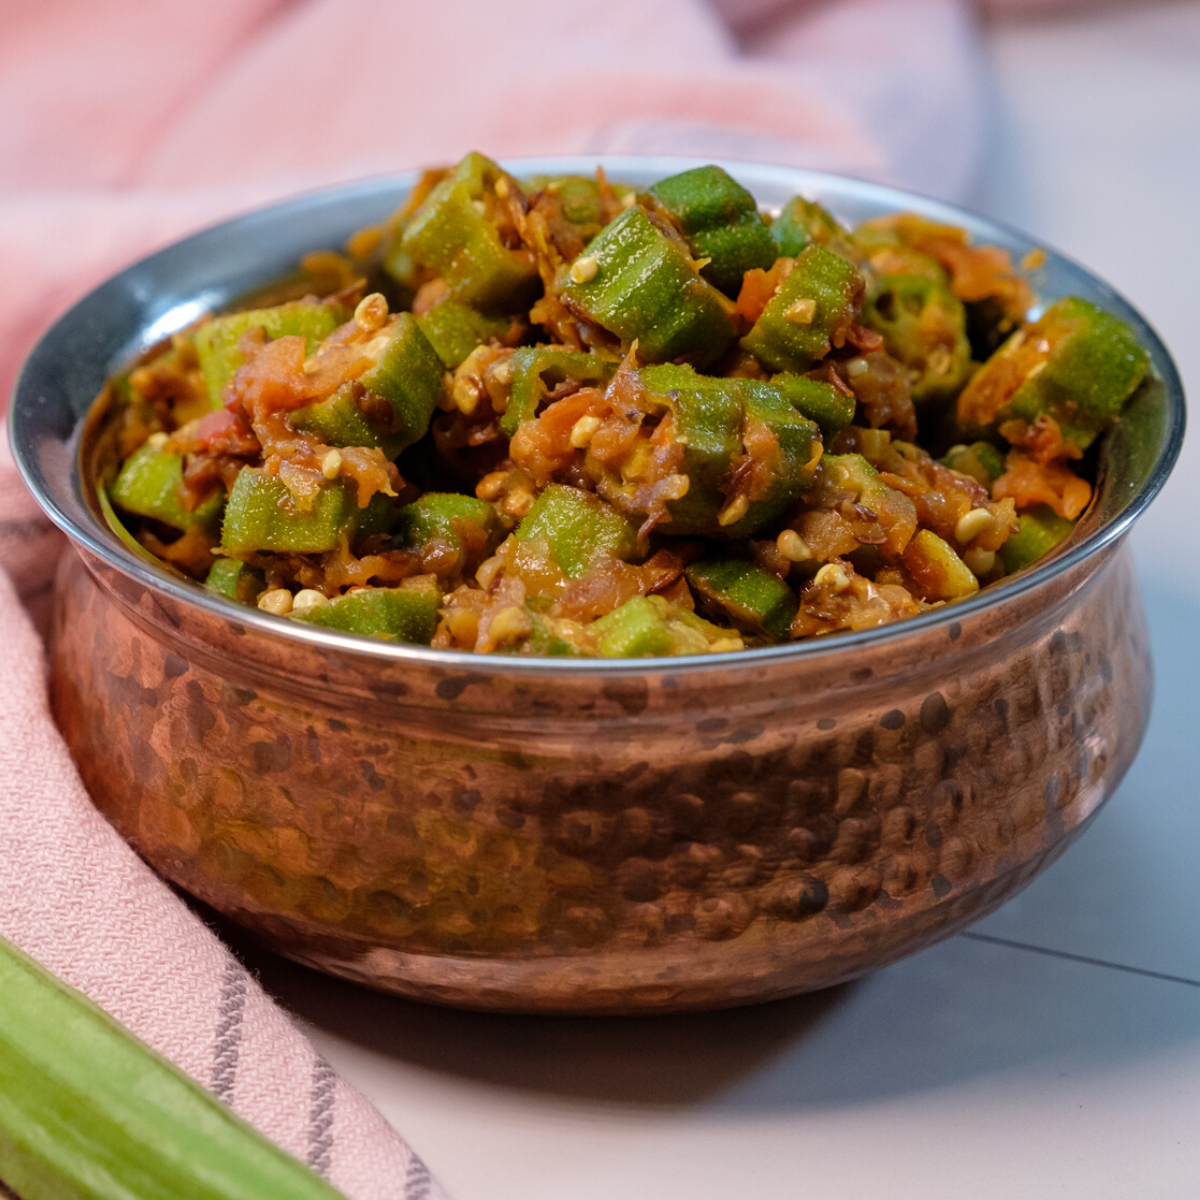 bhindi sabzi, bhindi masala, indian okra recipe